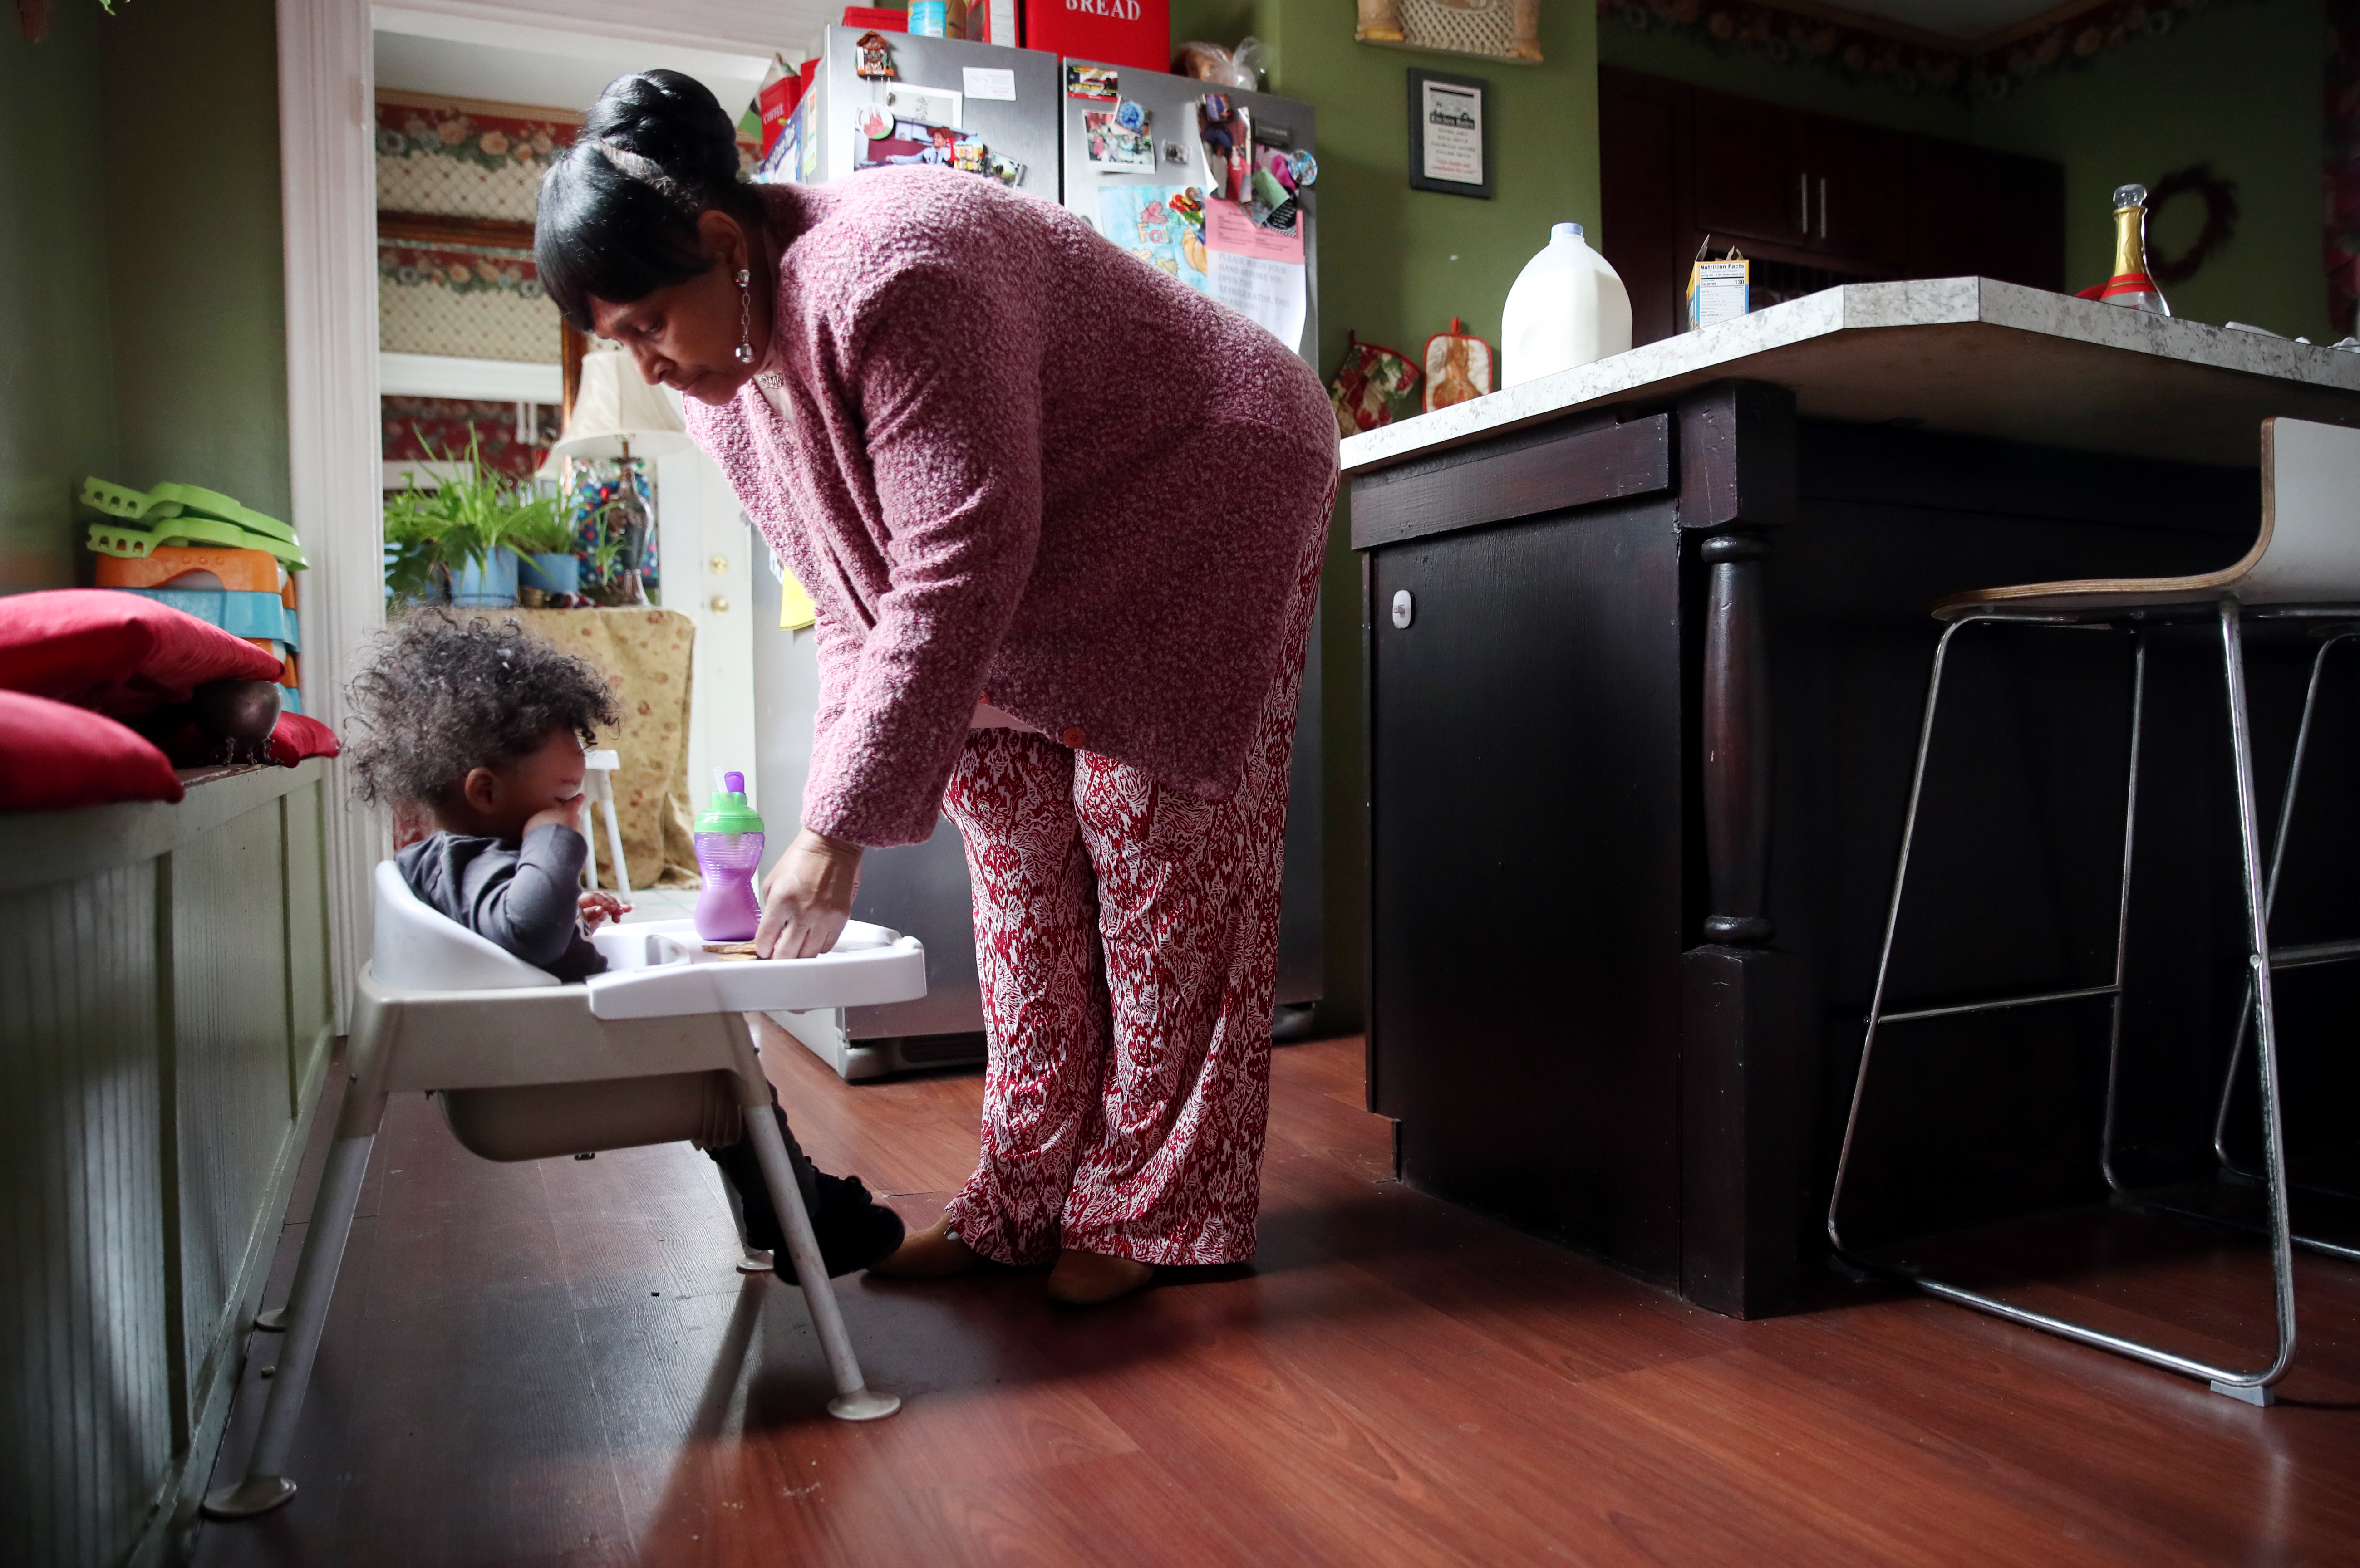 A child care provider stands over a baby sitting in a small feeding chair.